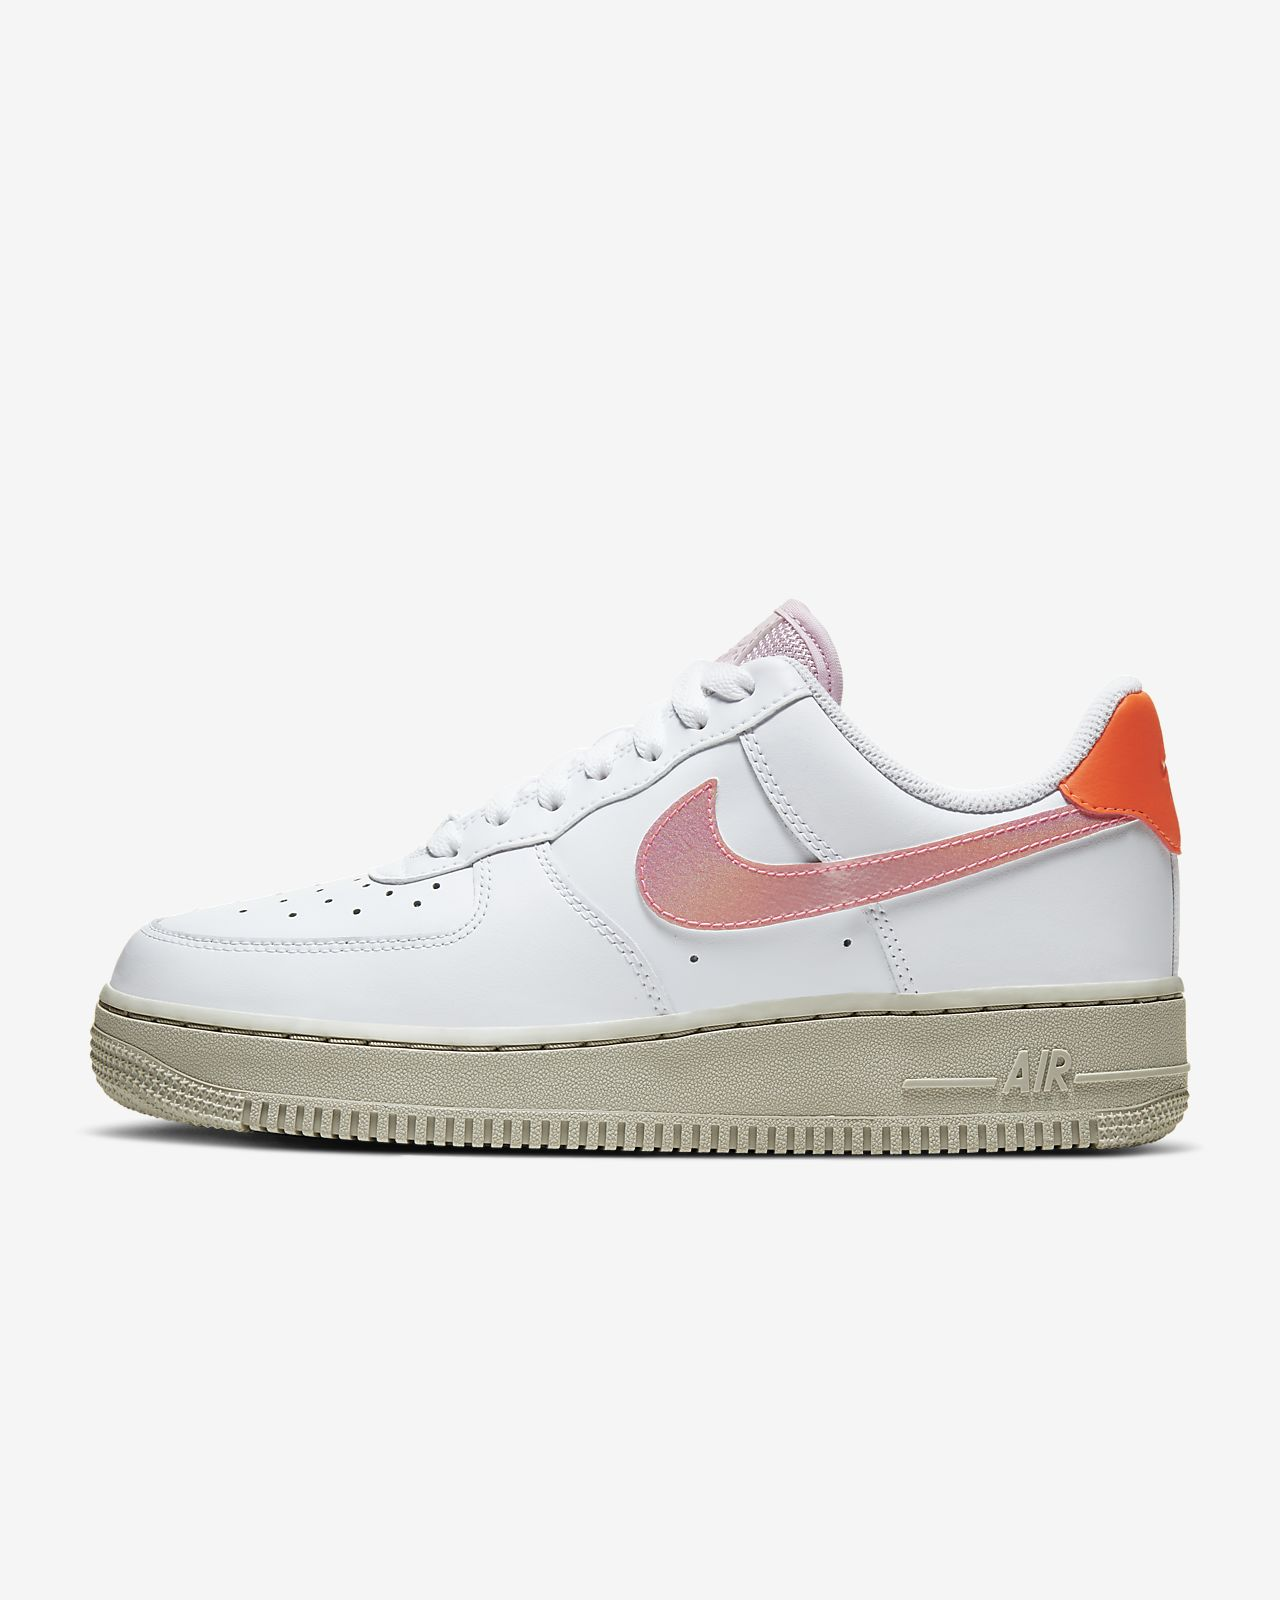 nike air force 1 07 femme blanche et rouge